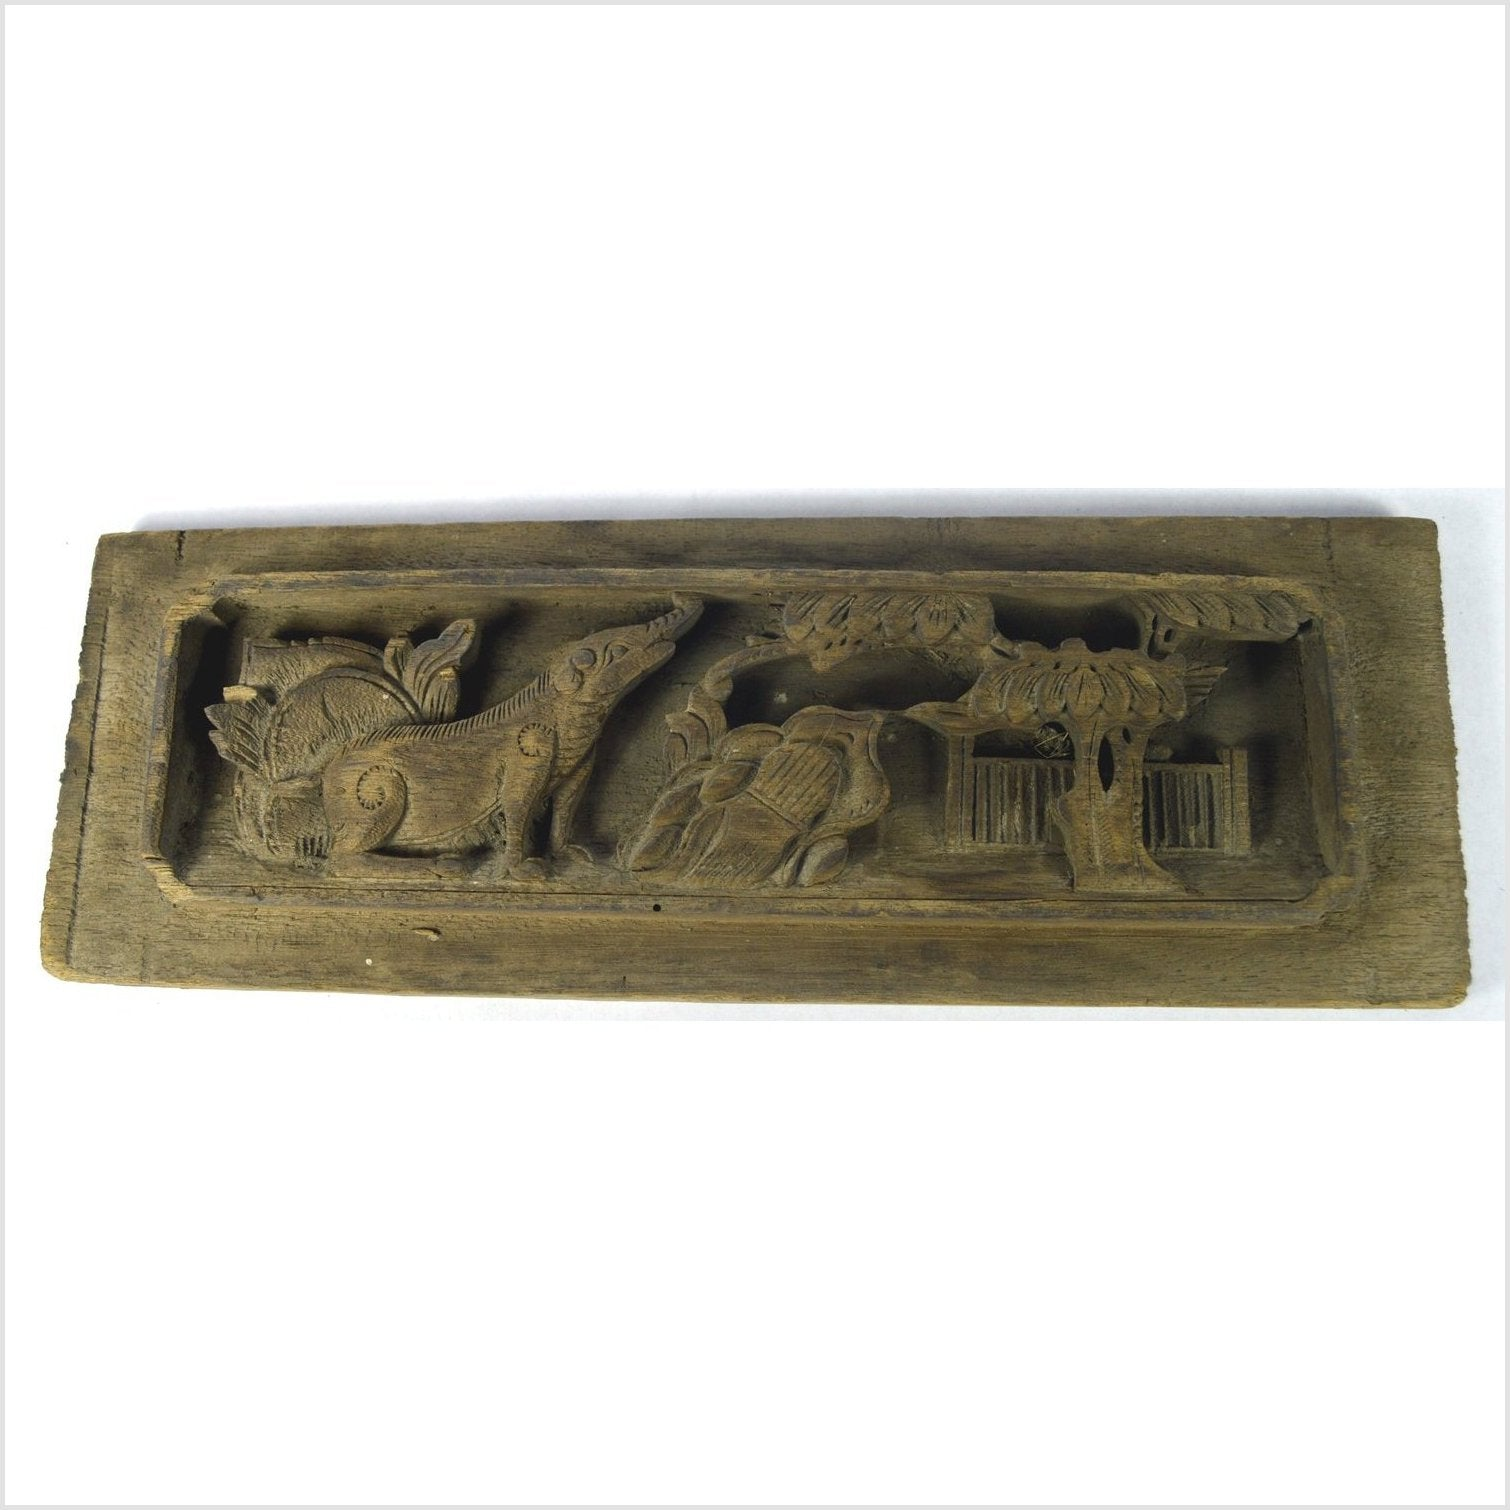 Antique Chinese Architectural Temple Plaque